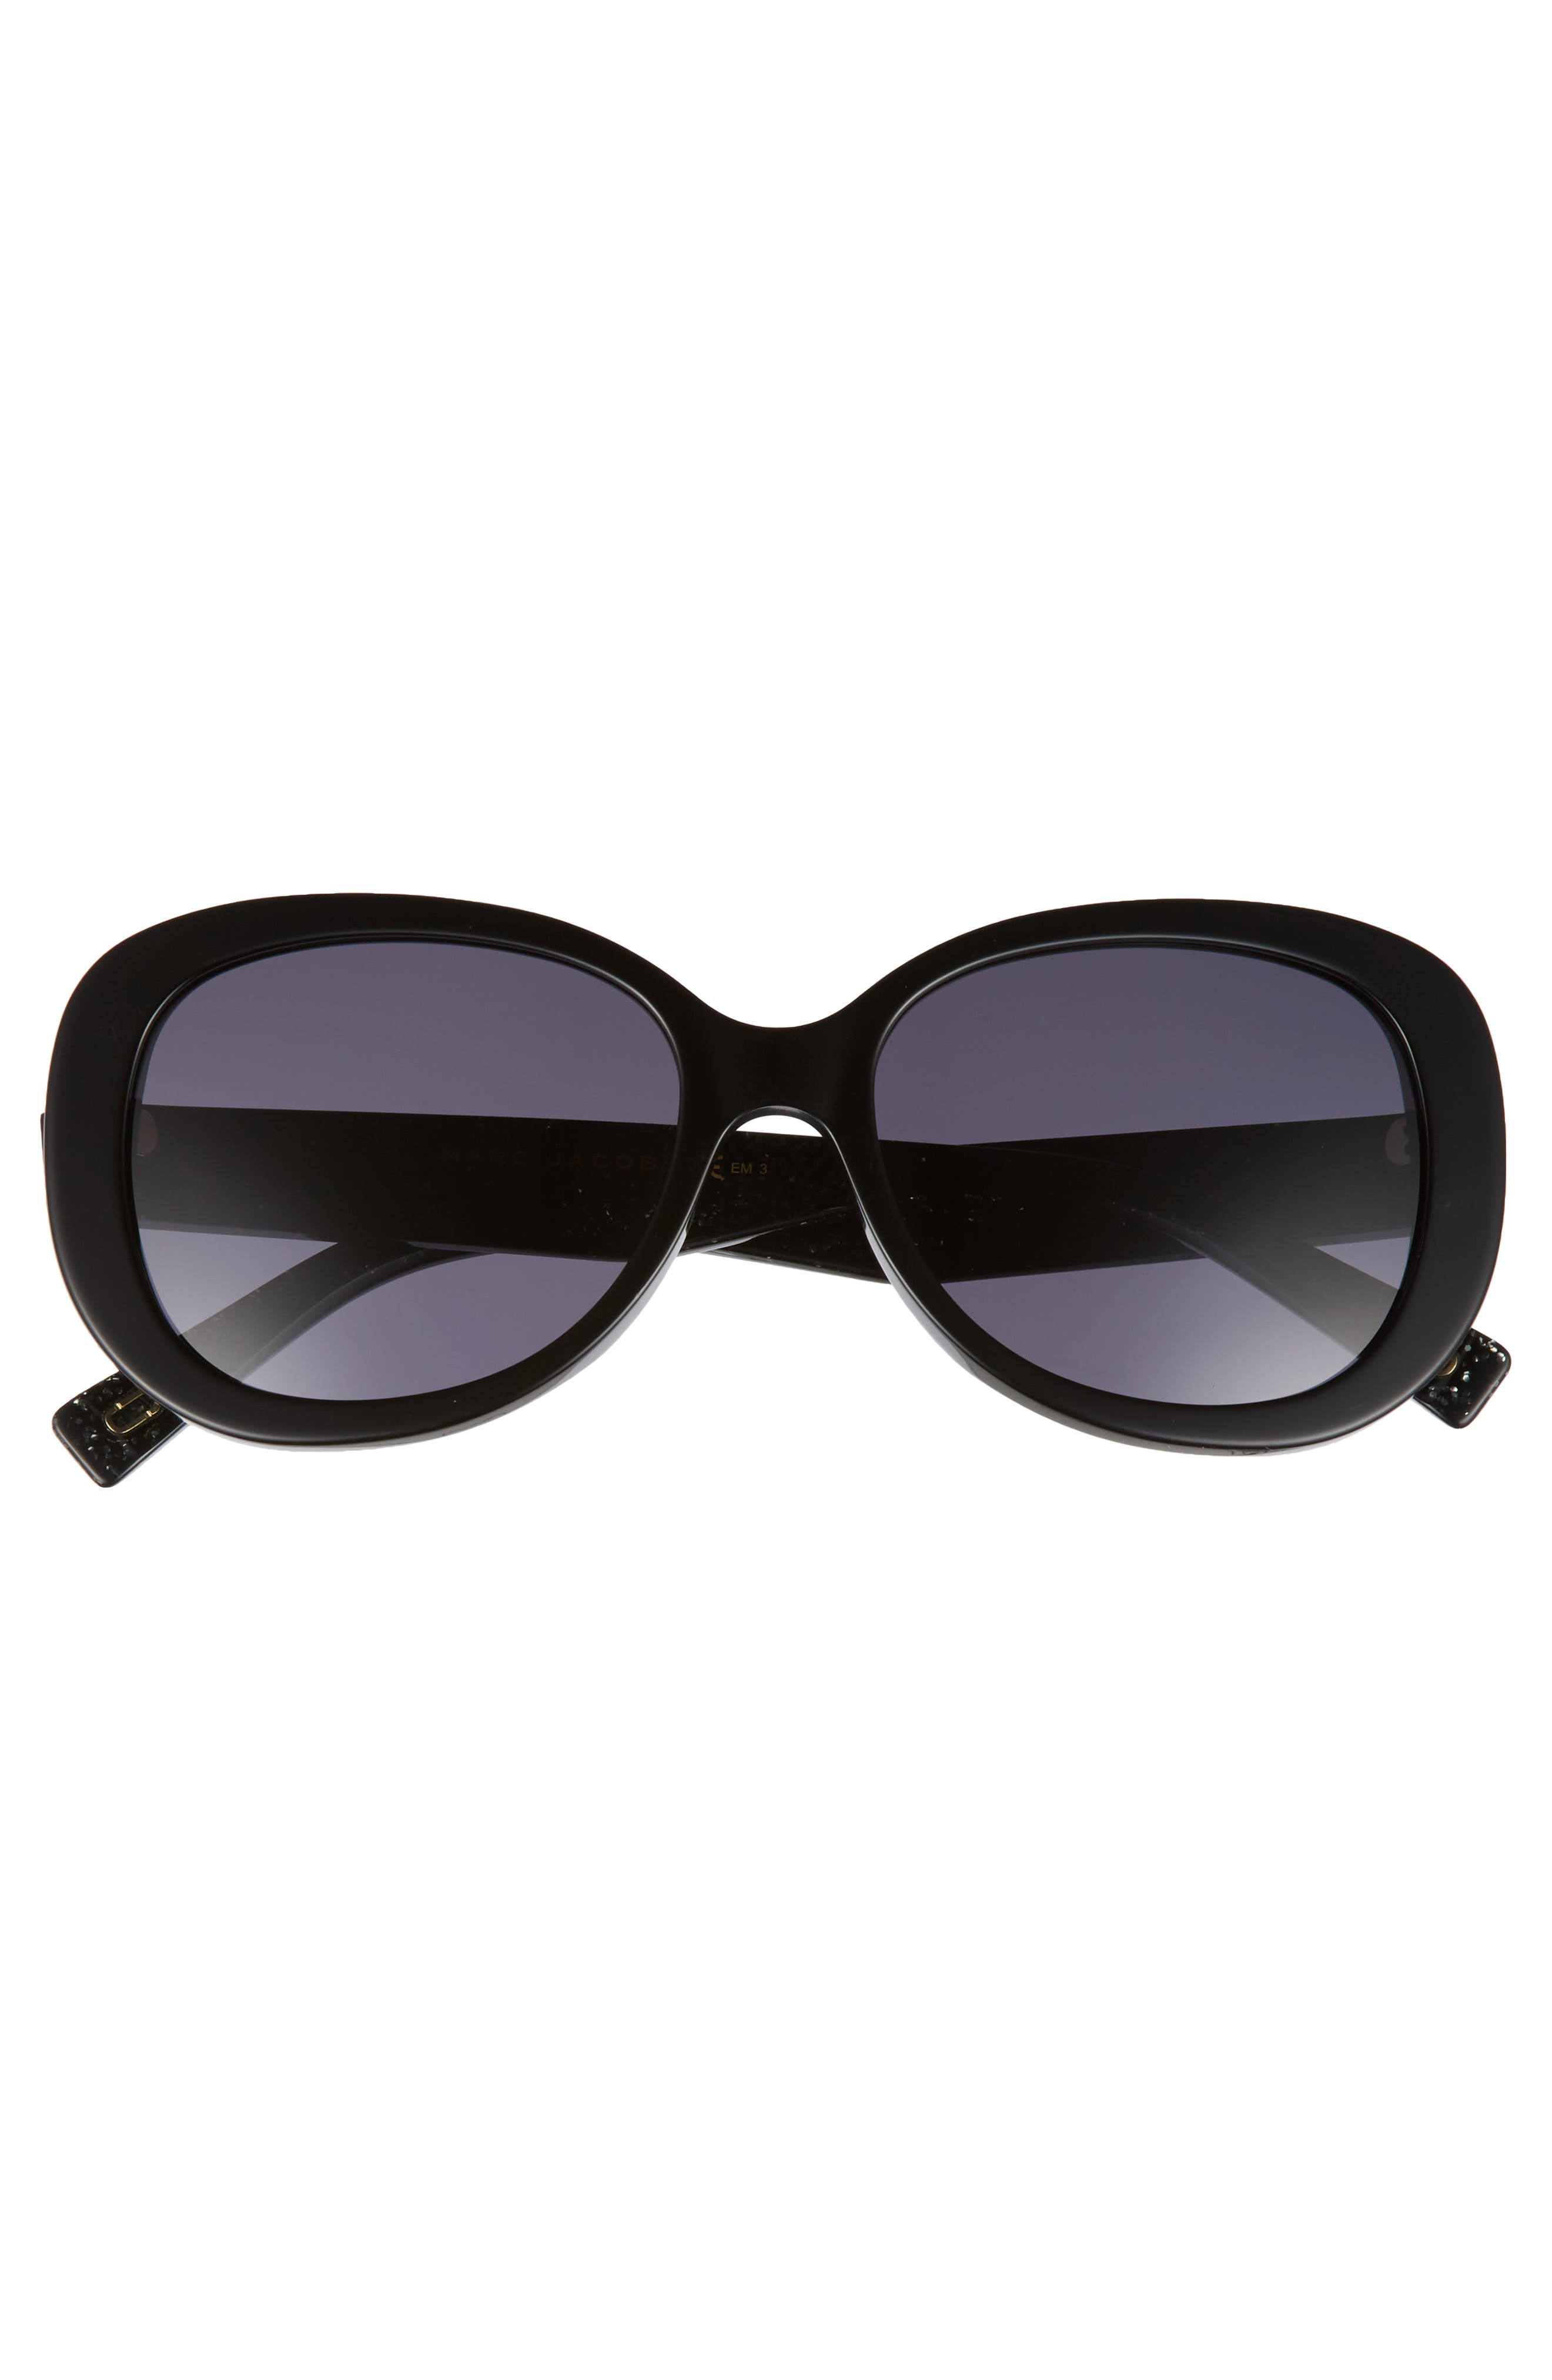 Alternate Image 3  - MARC JACOBS 56mm Butterfly Sunglasses